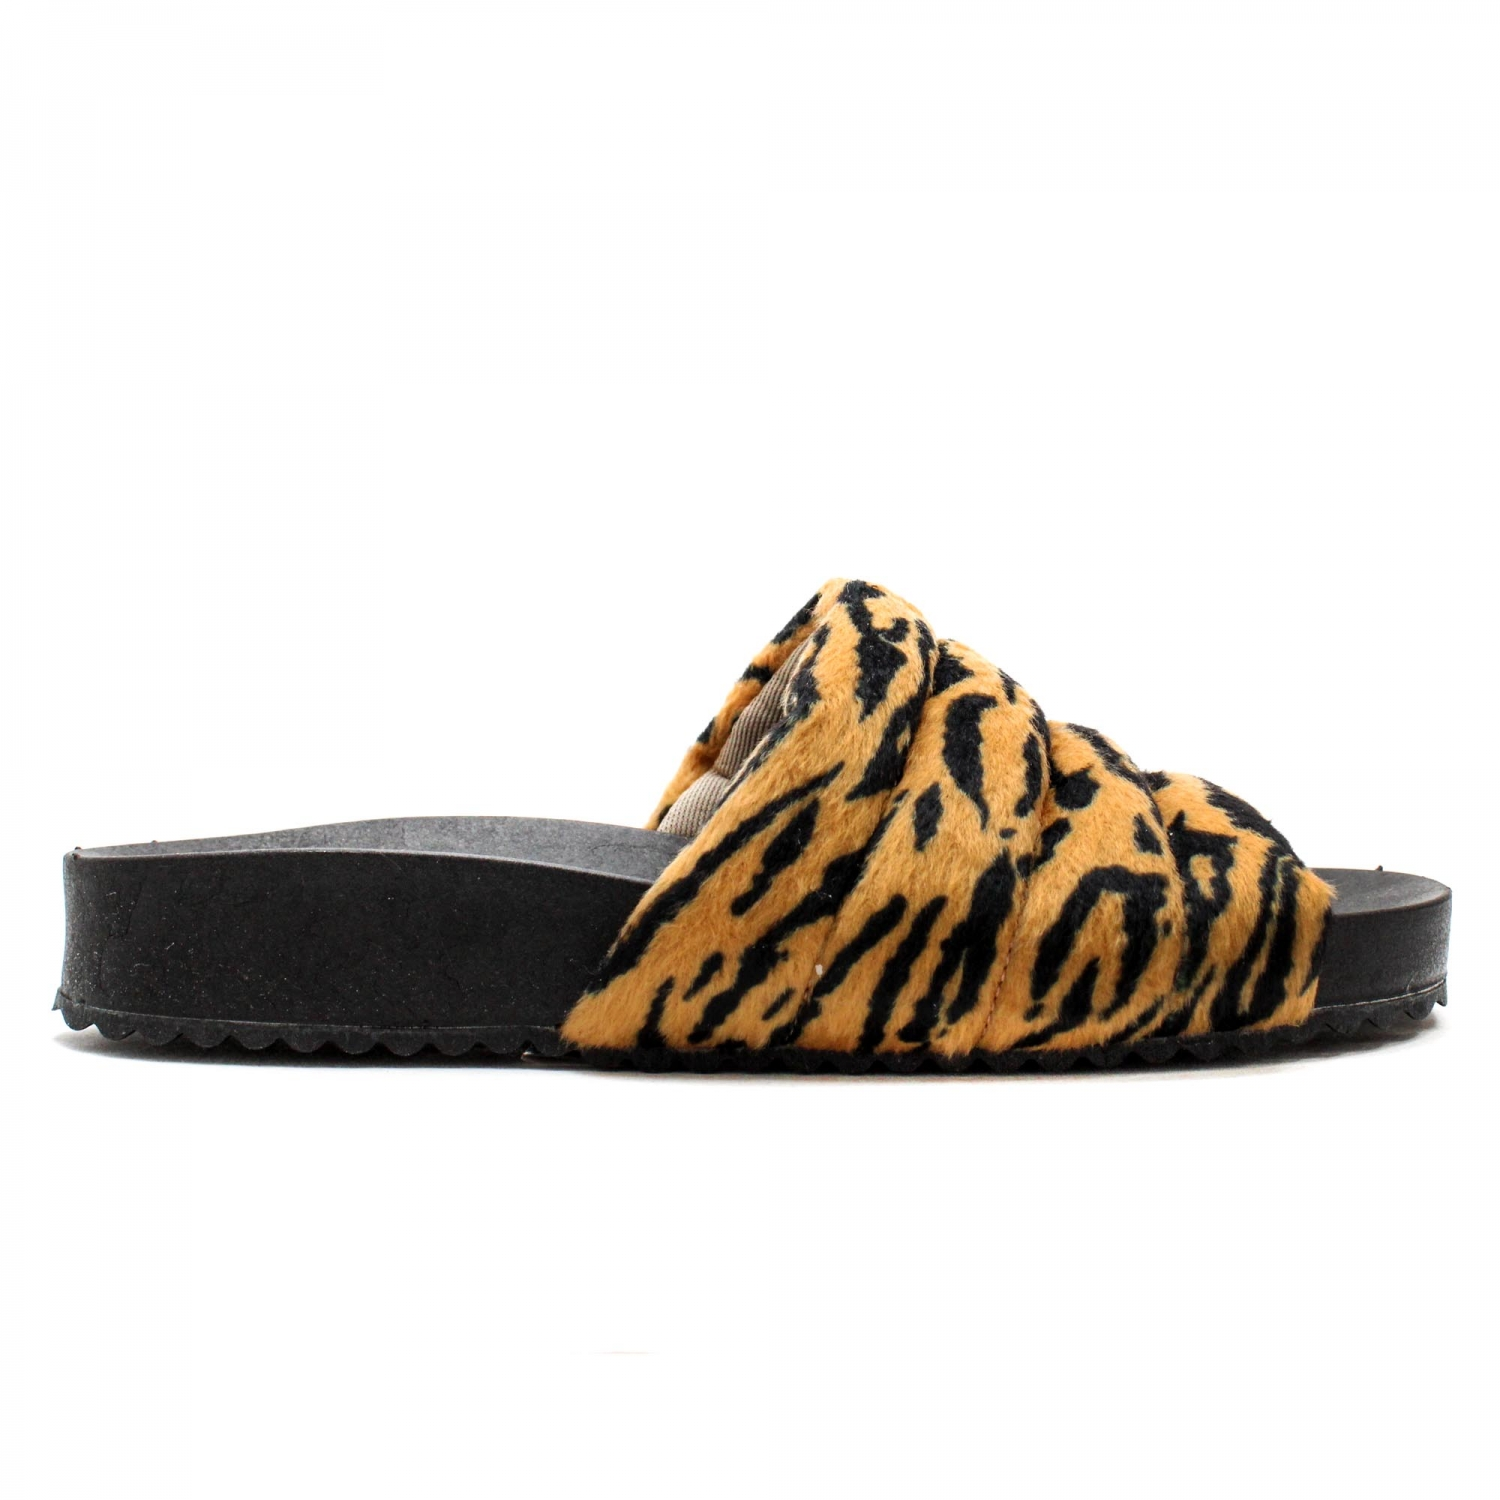 SLIDE HOME PÊLO ANIMAL PRINT ZEBRA